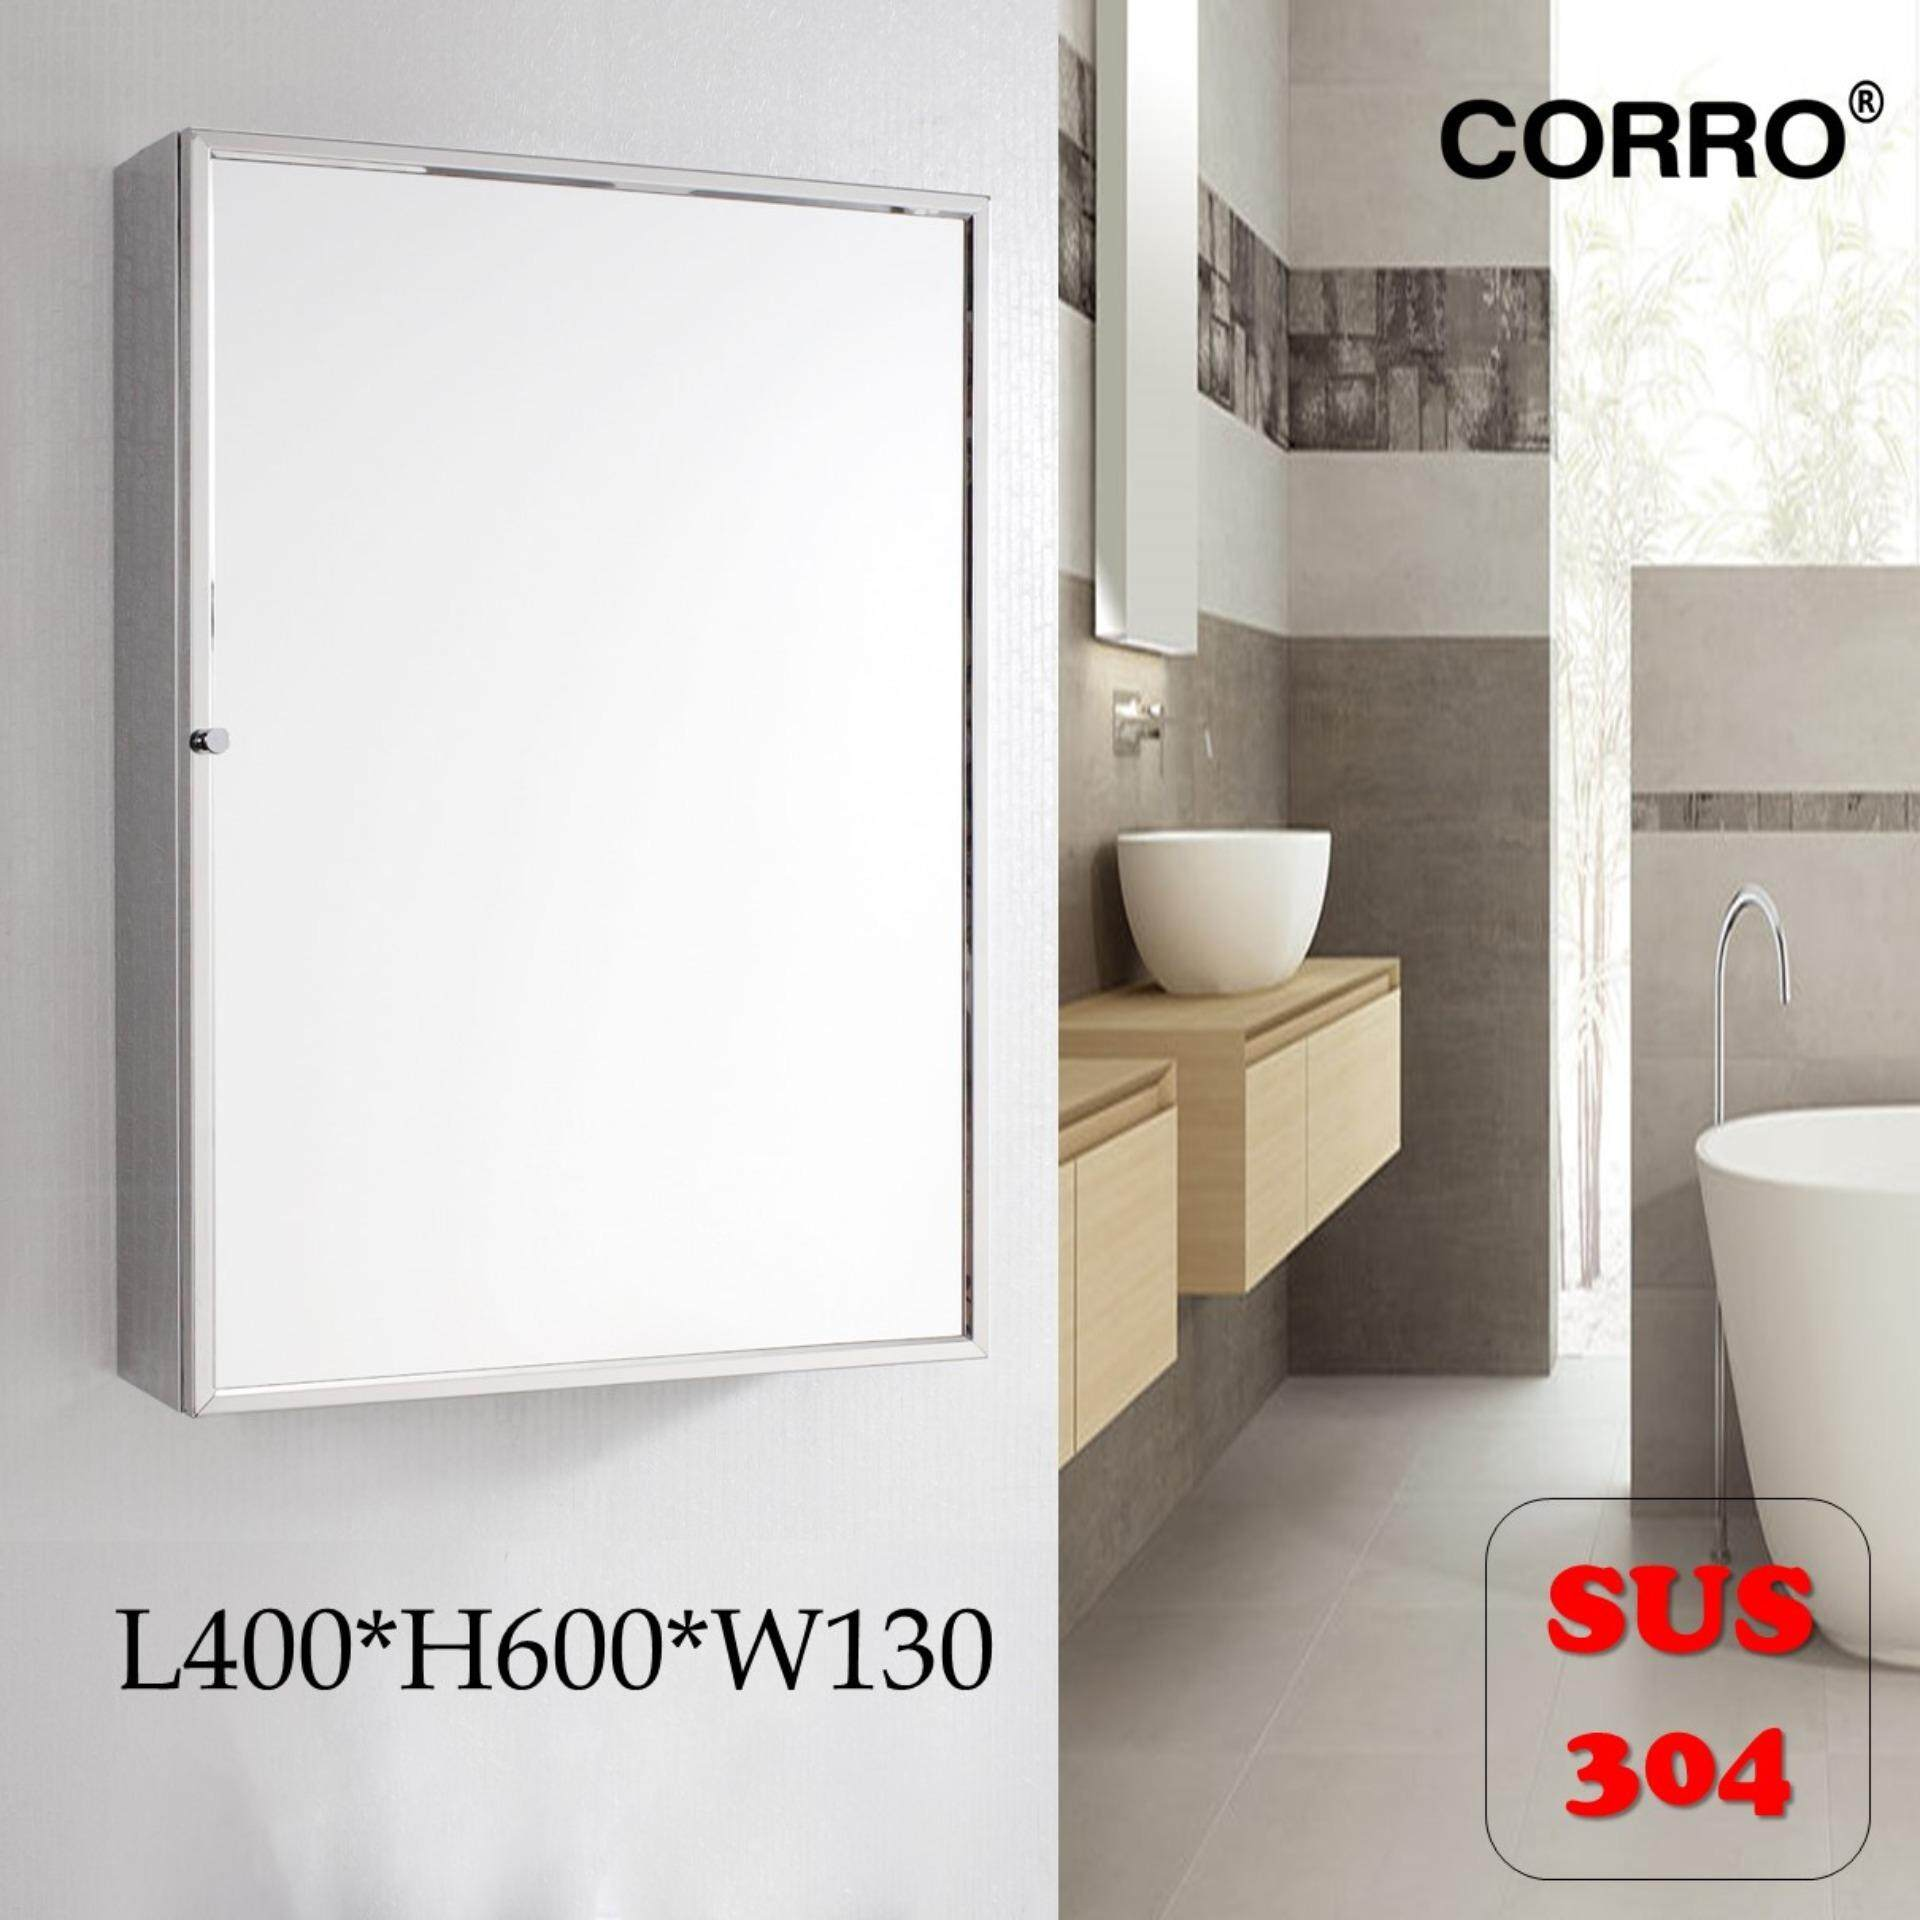 CORRO SUS304 Stainless Steel Bathroom Mirror Cabinet -L400 x H600 x W130mm